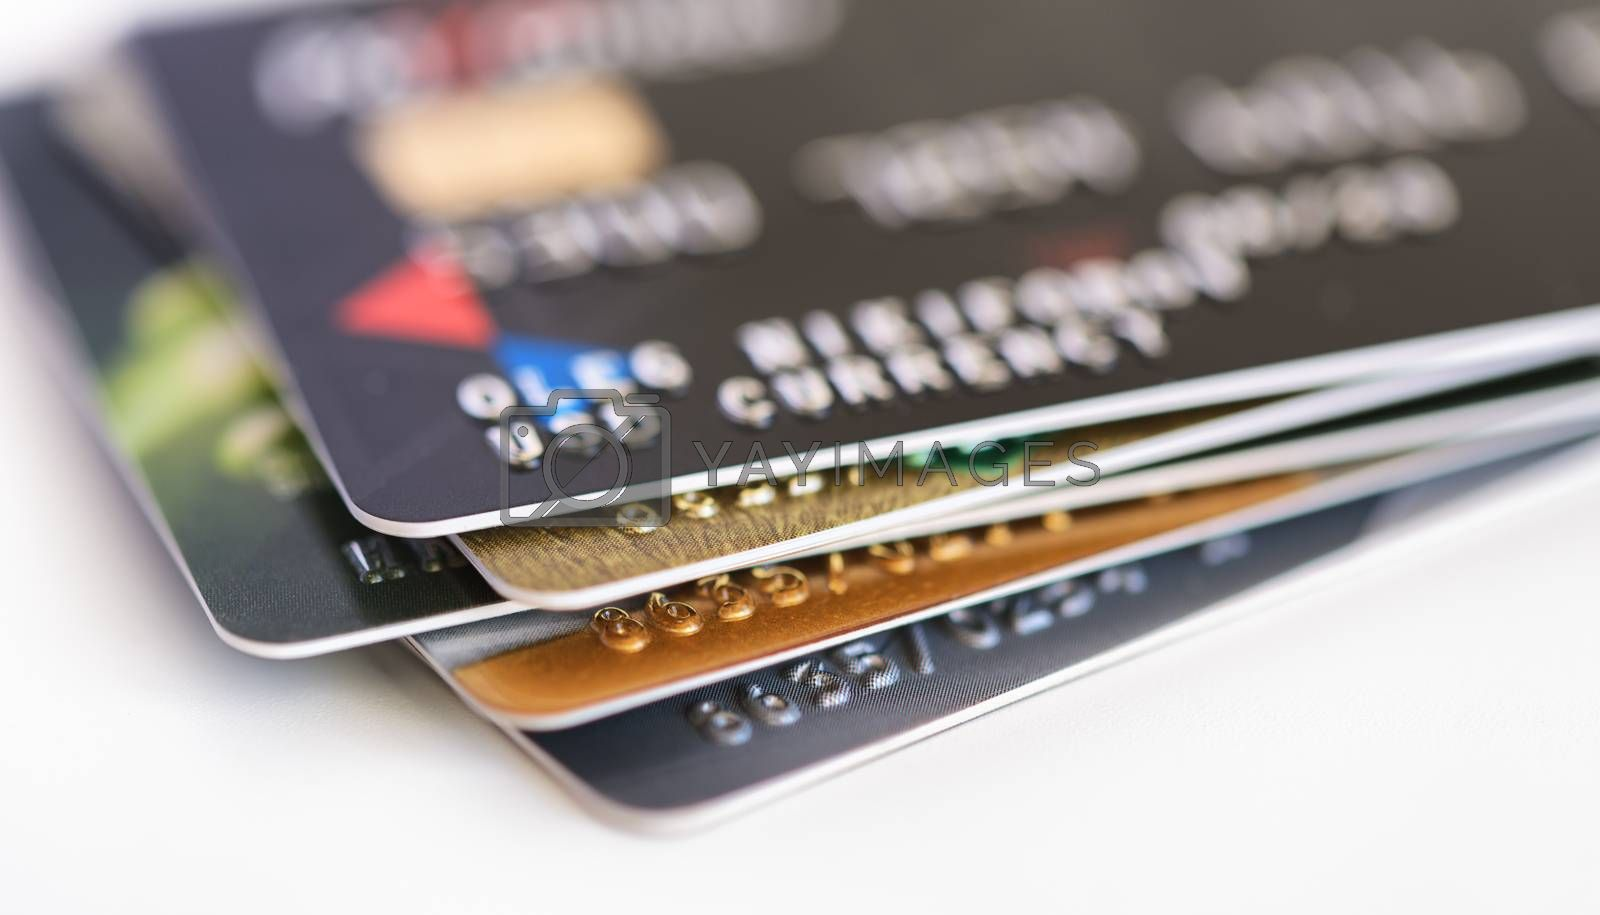 Credit card close-up. Credit card pile. Plastic card on white background